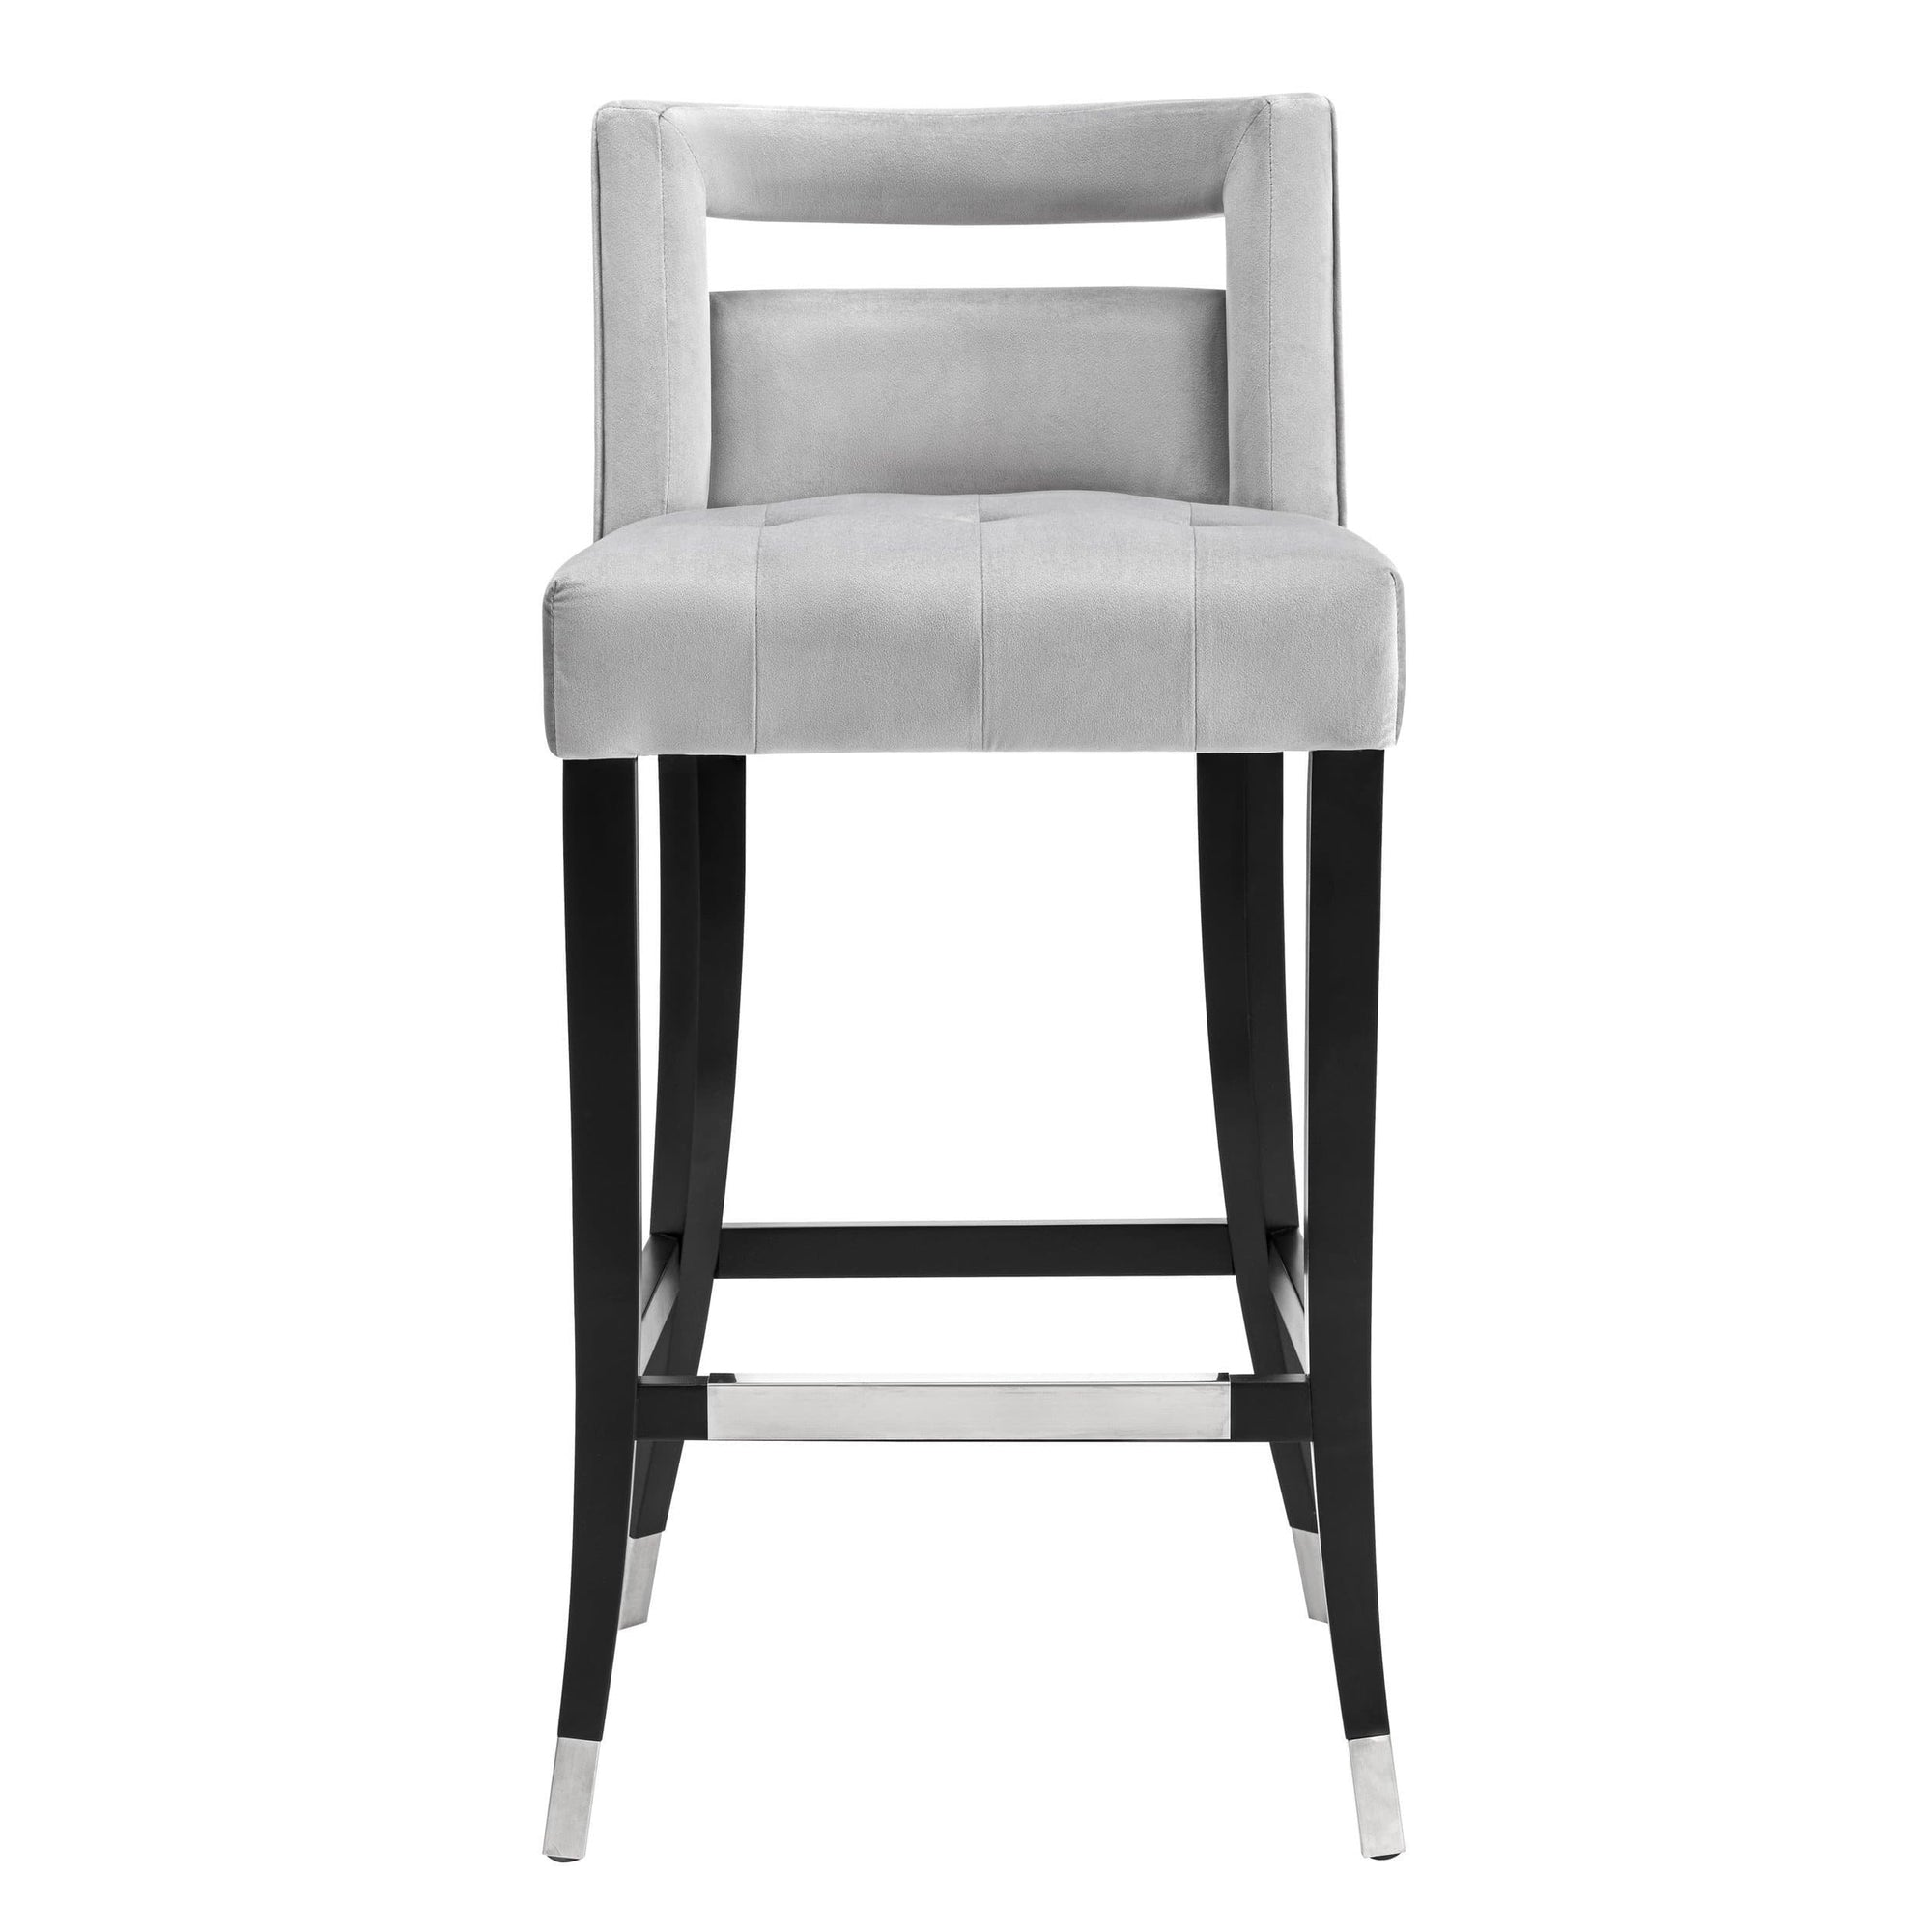 Fabulous Hart Counter Stool Grey High Fashion Home Ibusinesslaw Wood Chair Design Ideas Ibusinesslaworg